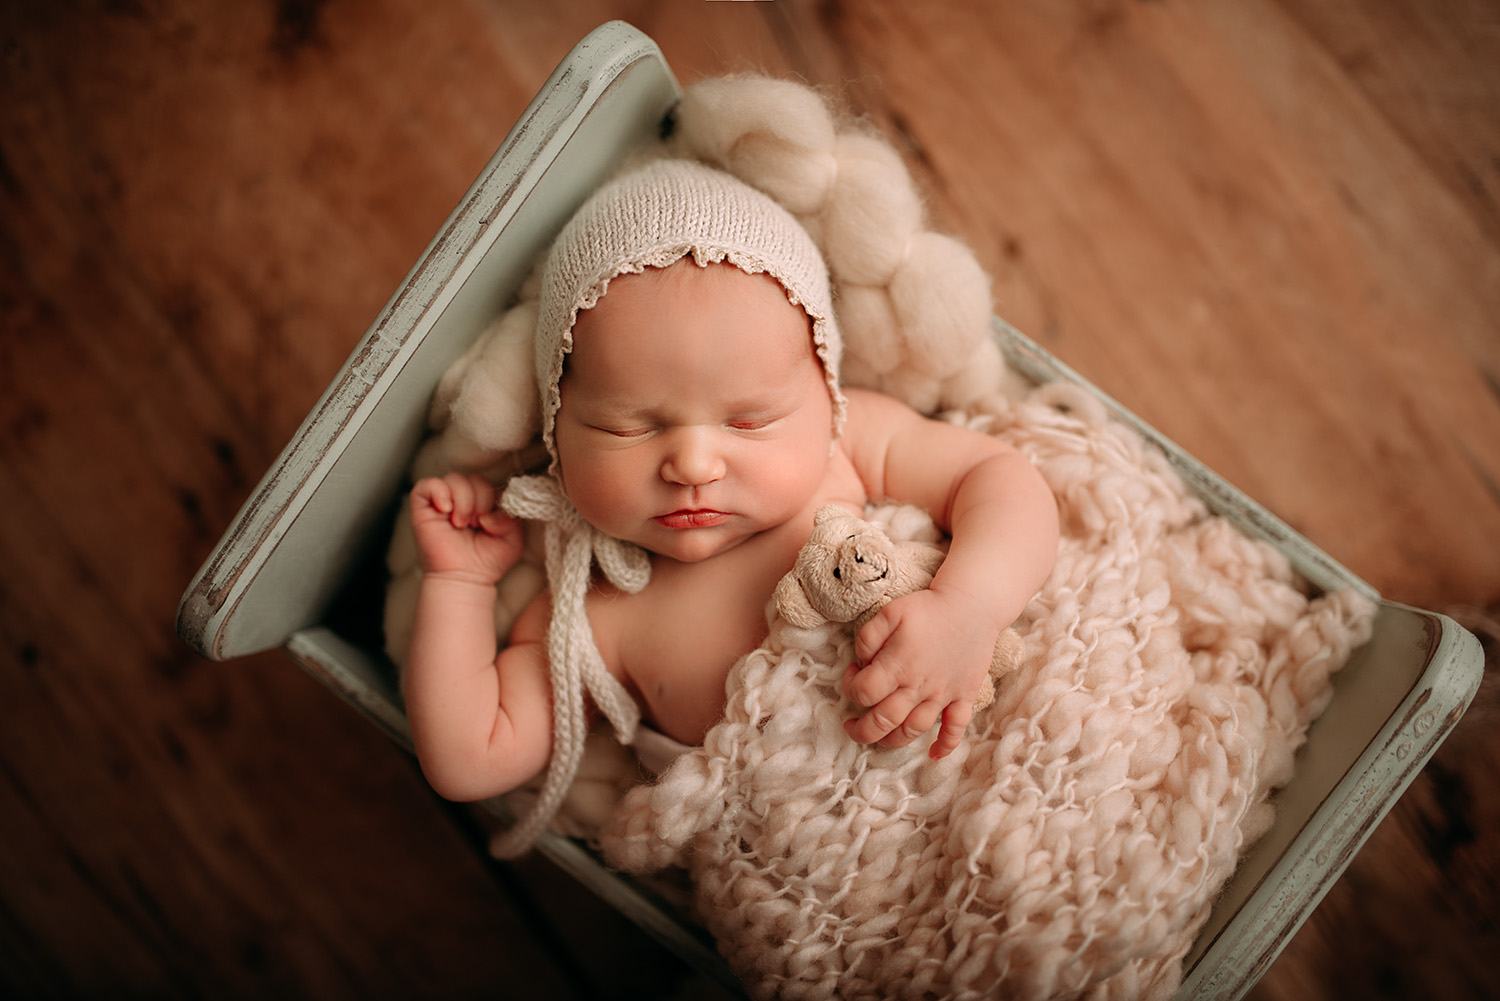 minneapolis_newborn_photographer.jpg